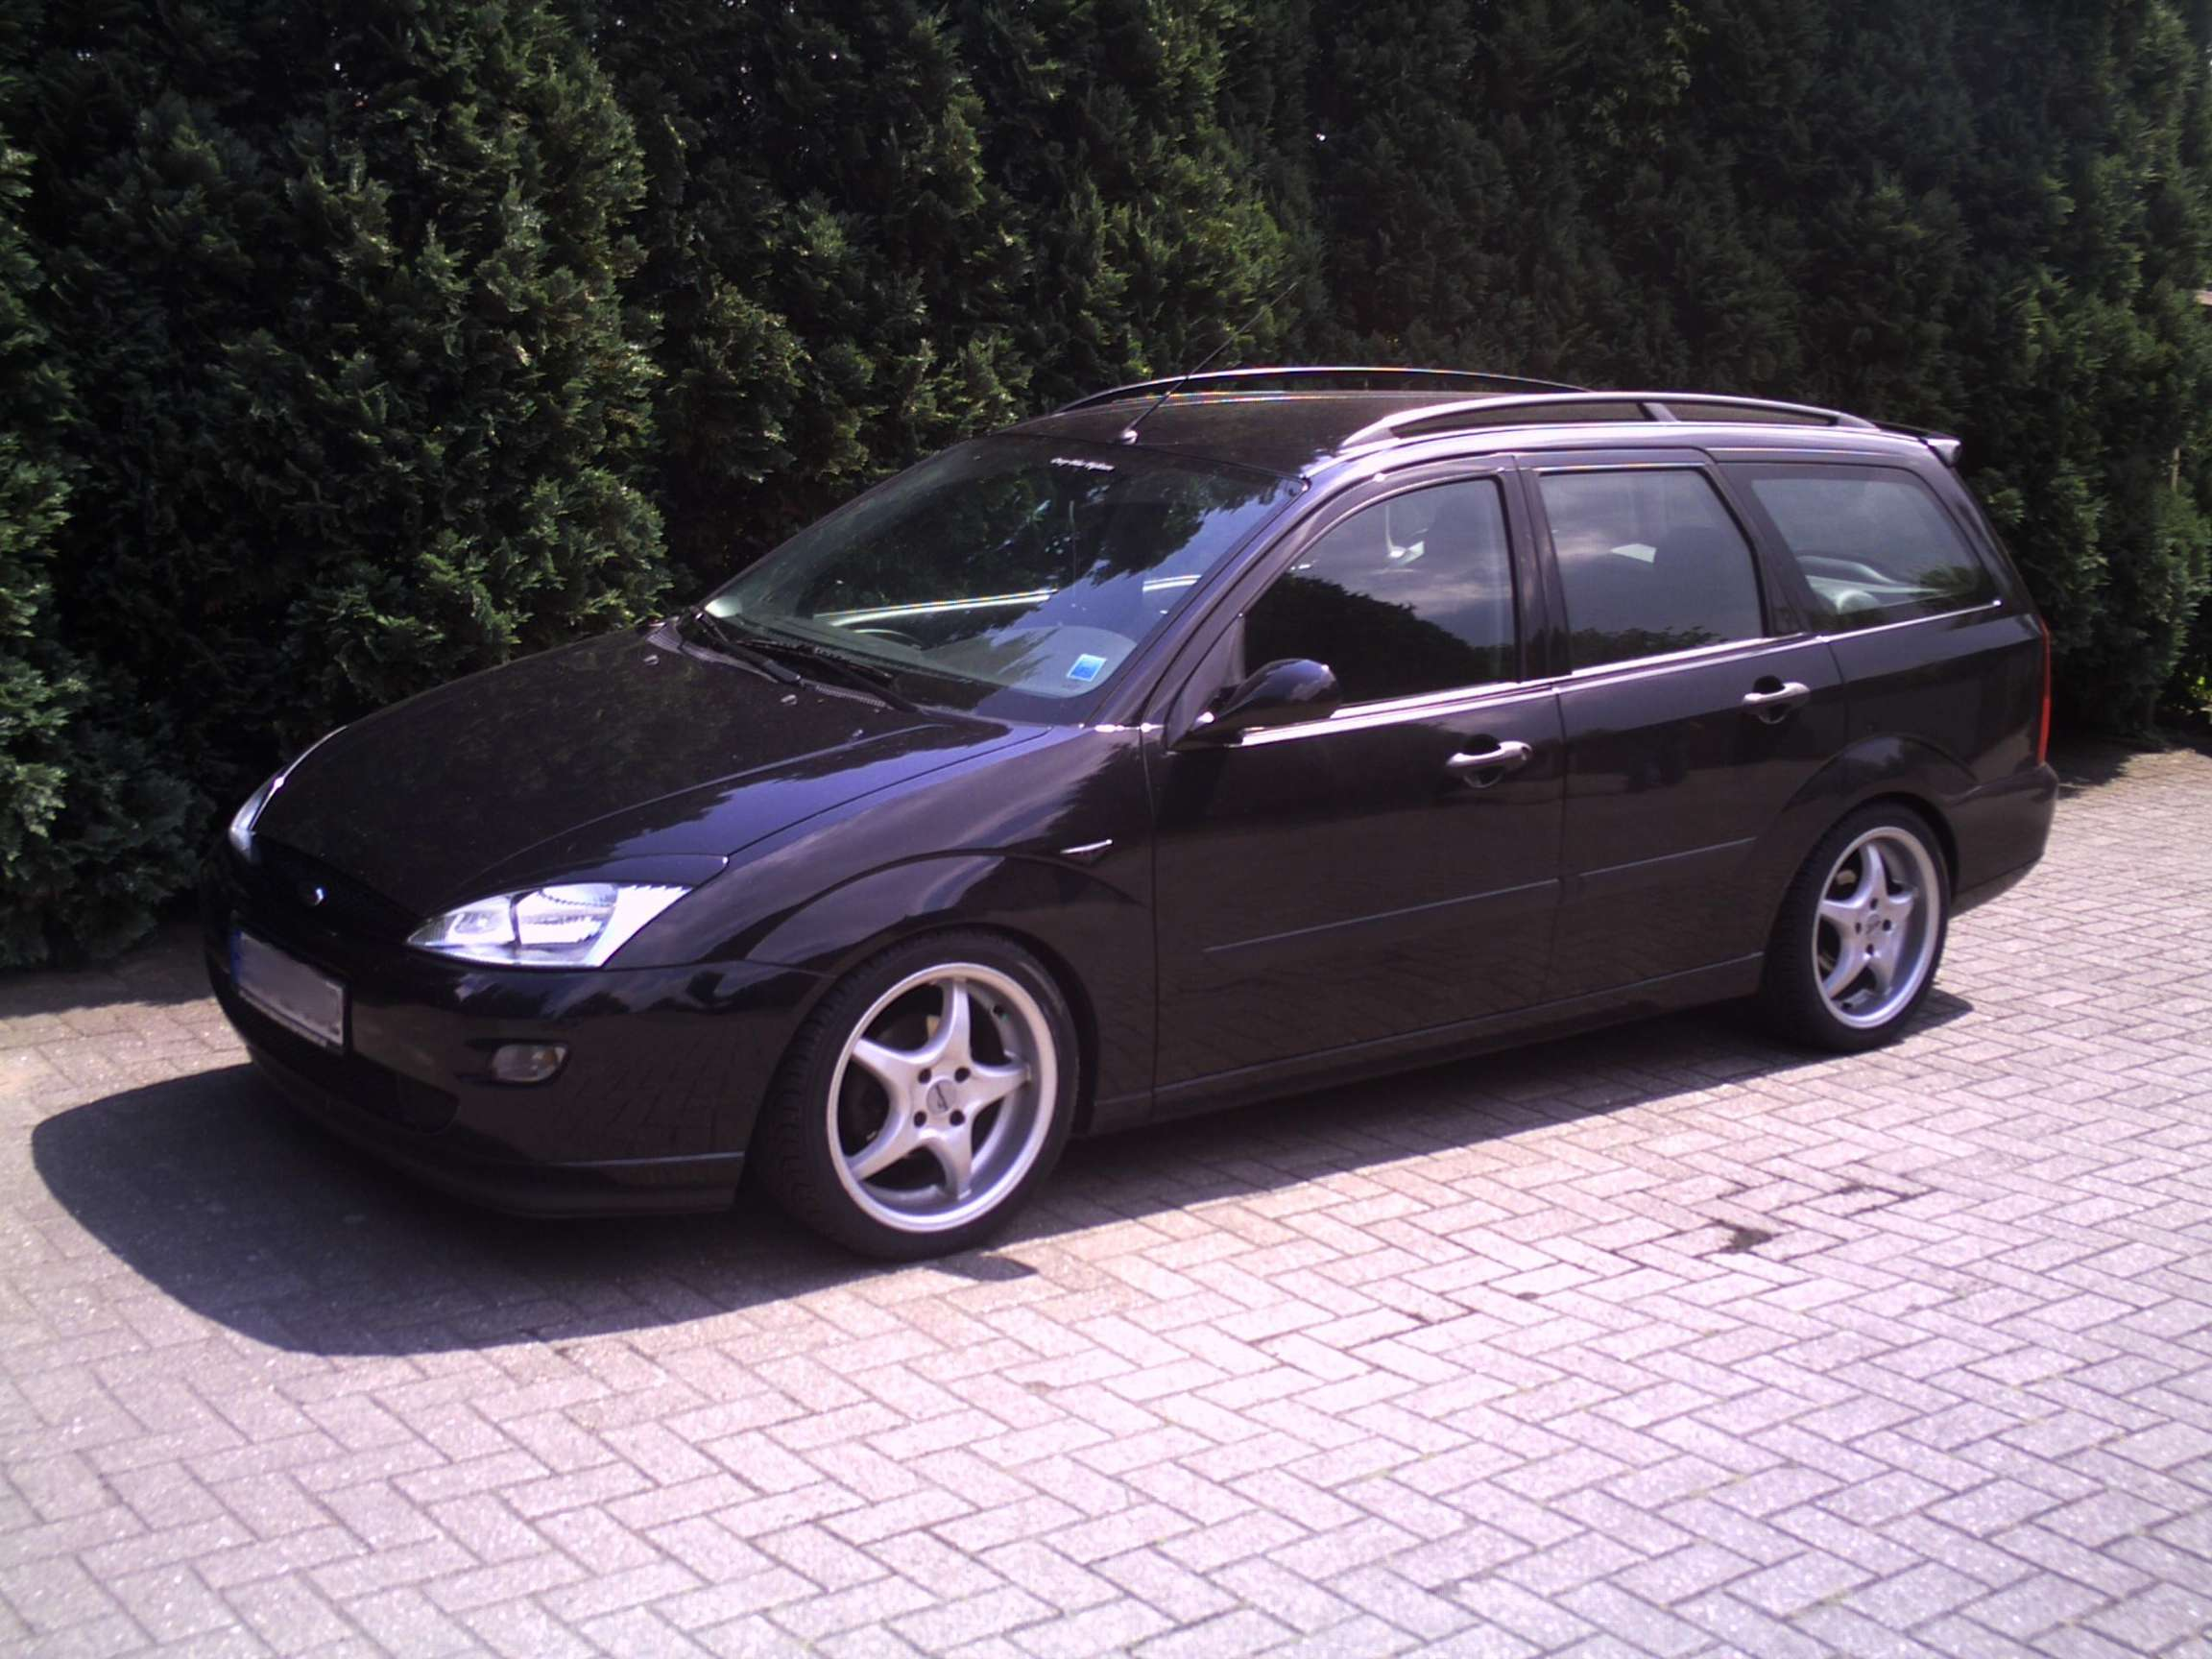 Ford Focus Turnier #7430186